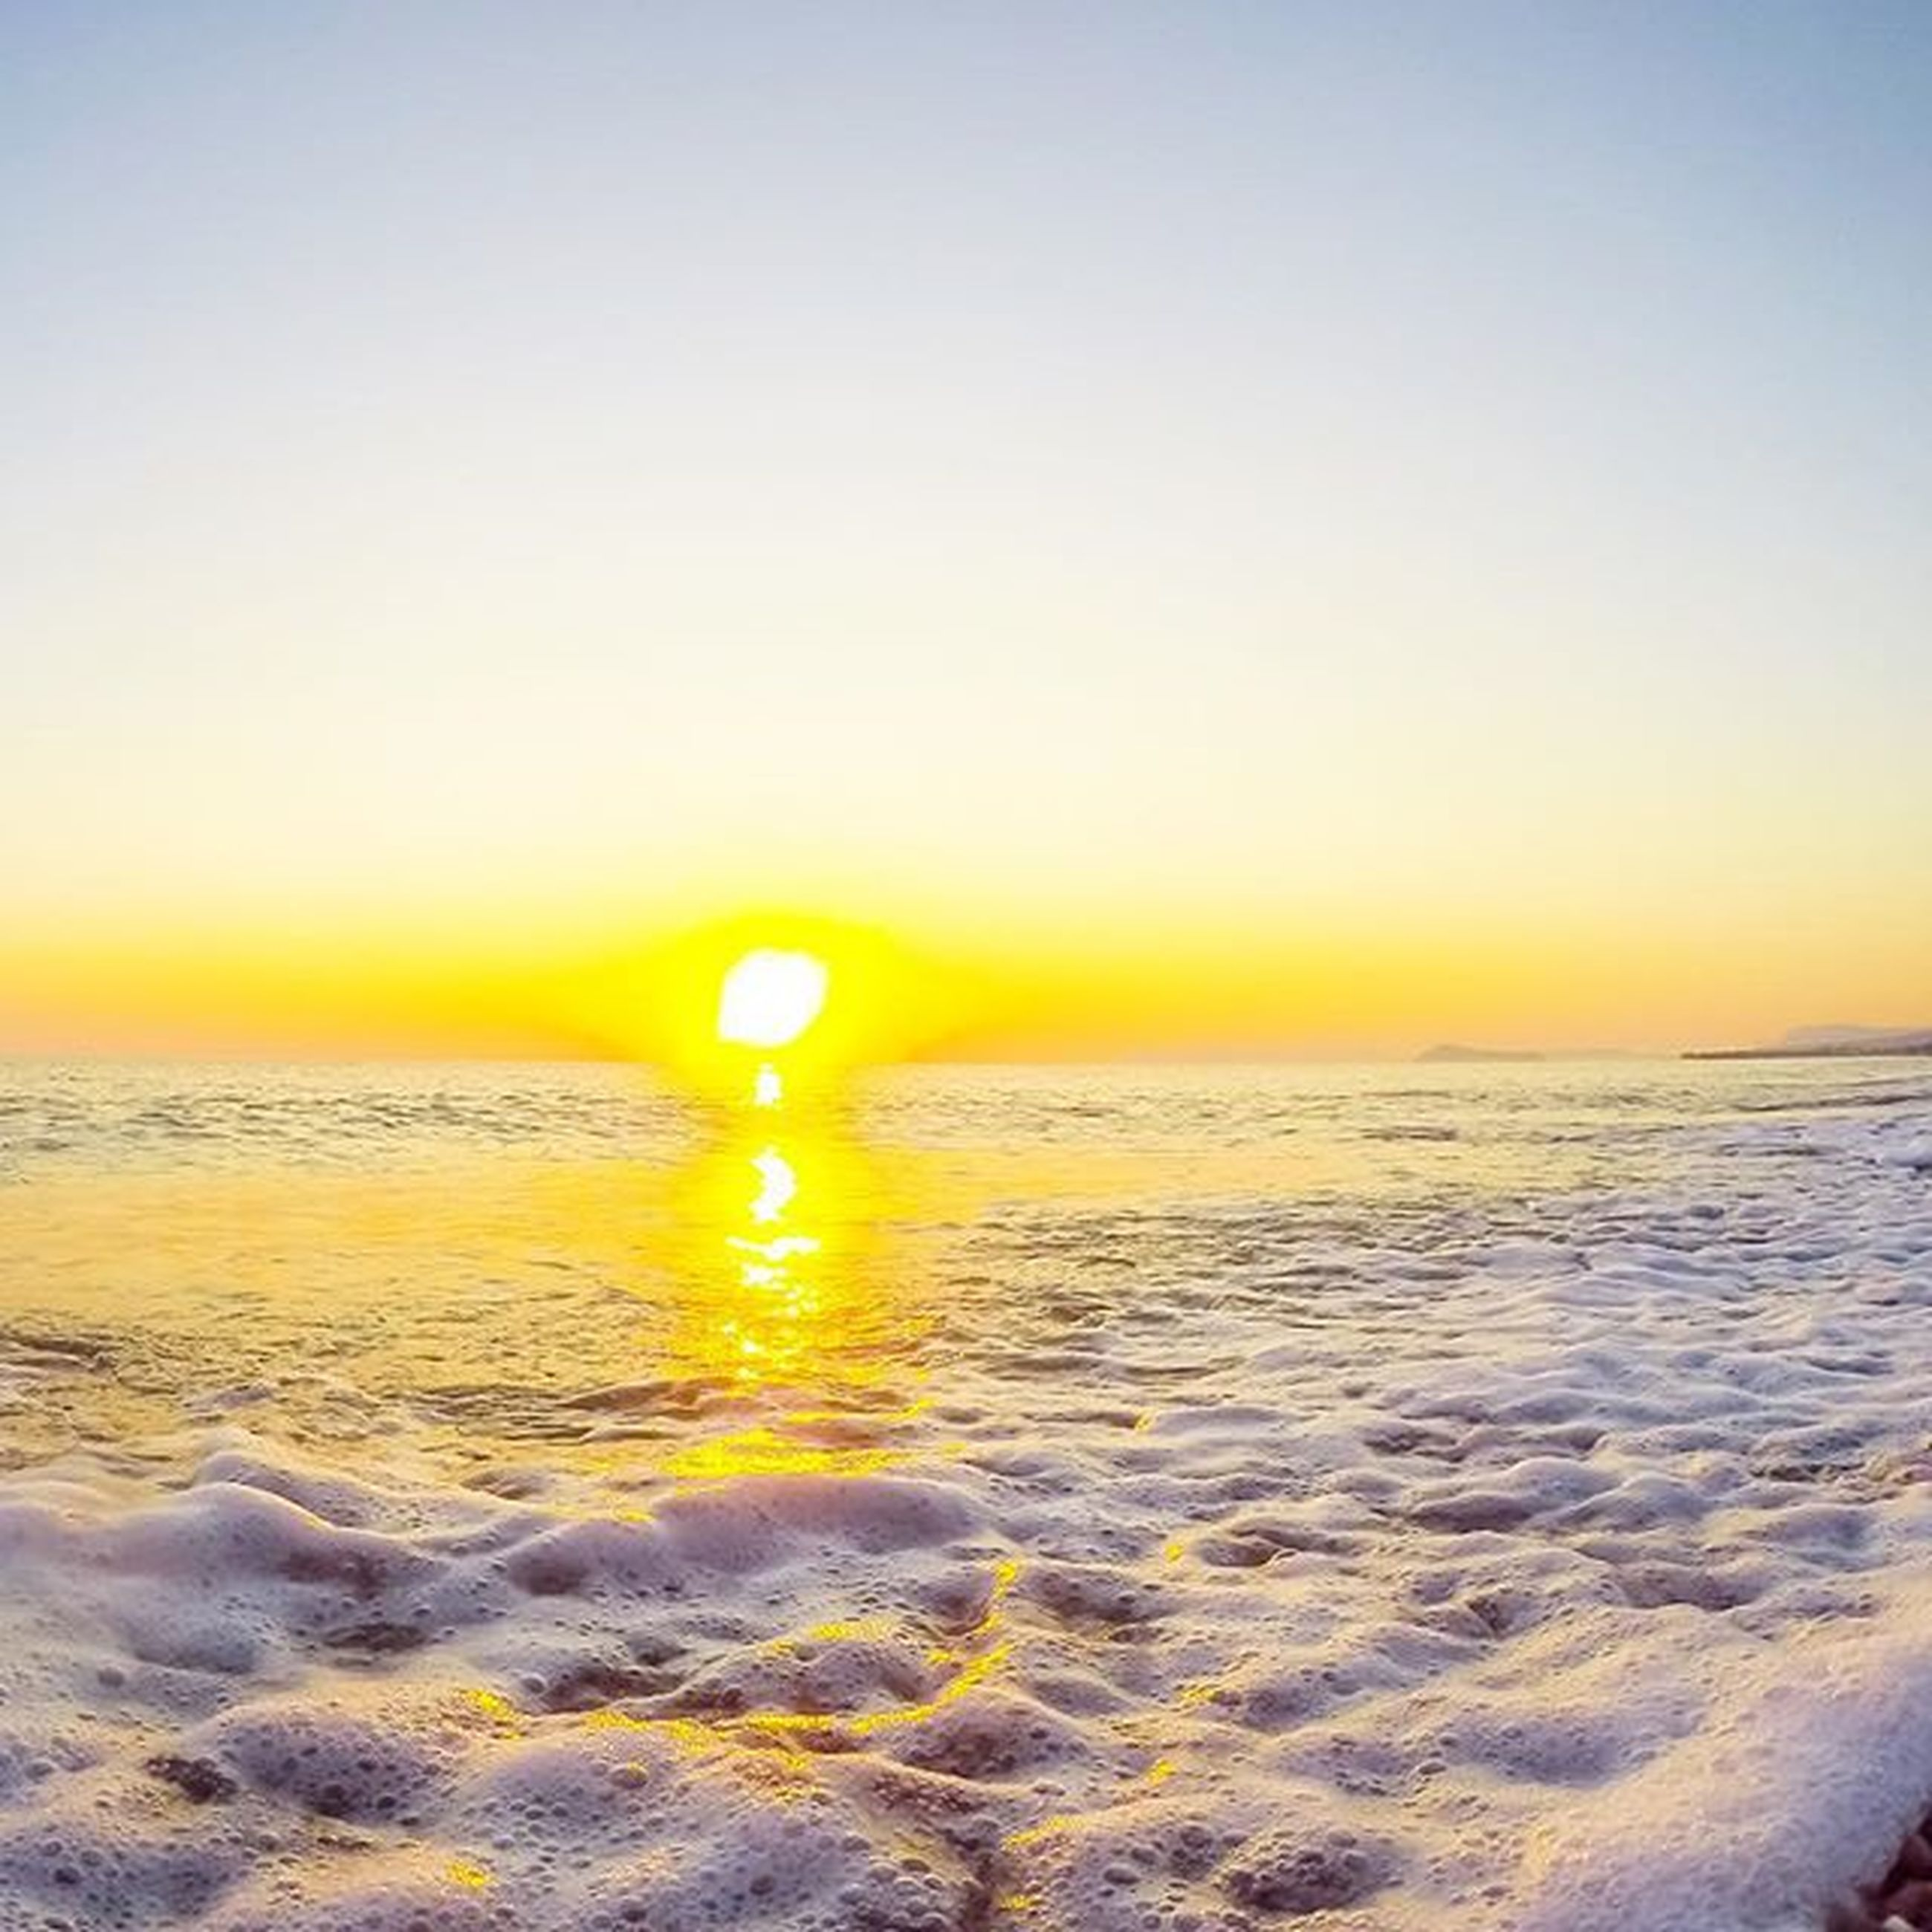 sunset, water, sea, beach, scenics, clear sky, tranquil scene, sun, tranquility, horizon over water, orange color, copy space, beauty in nature, reflection, nature, shore, idyllic, sky, sand, no people